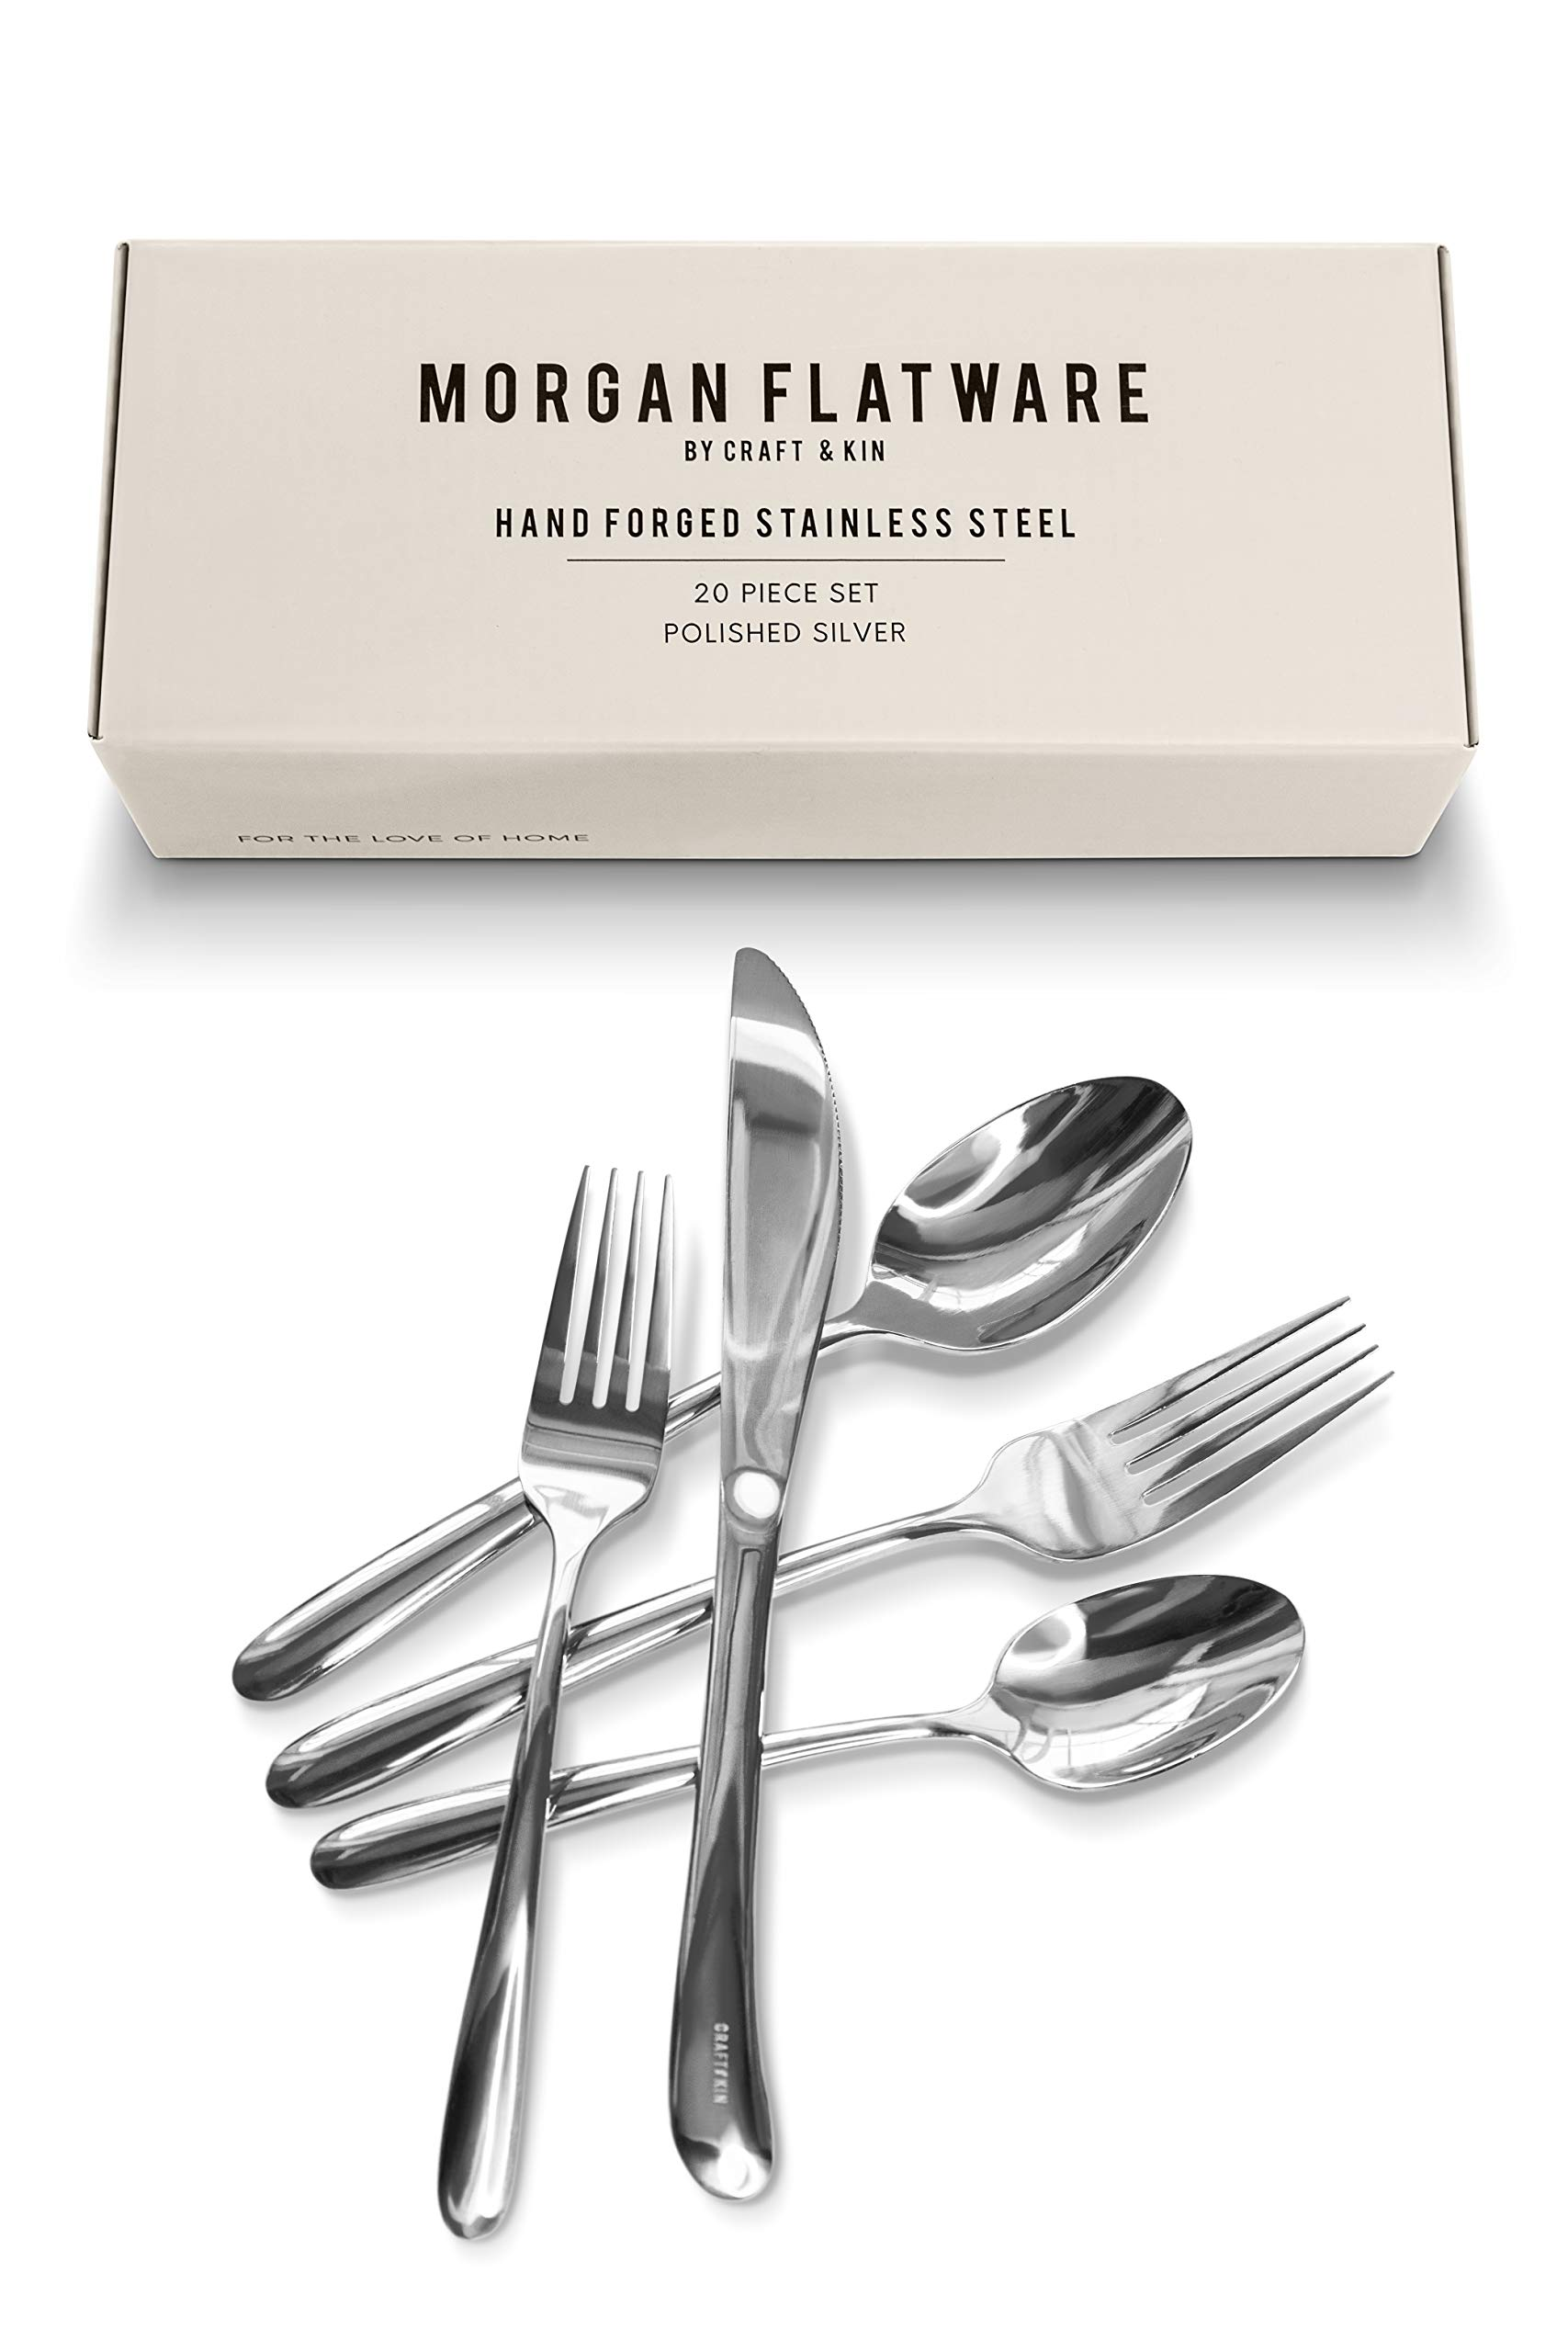 Craft & Kin Silverware Set, Hand-Forged Classic Heirloom Luxury Silver Flatware Set | Premium Quality Pure Stainless Steel Cutlery Set | High Mirror Polished Dinnerware Set (20-pc, Set for 4)